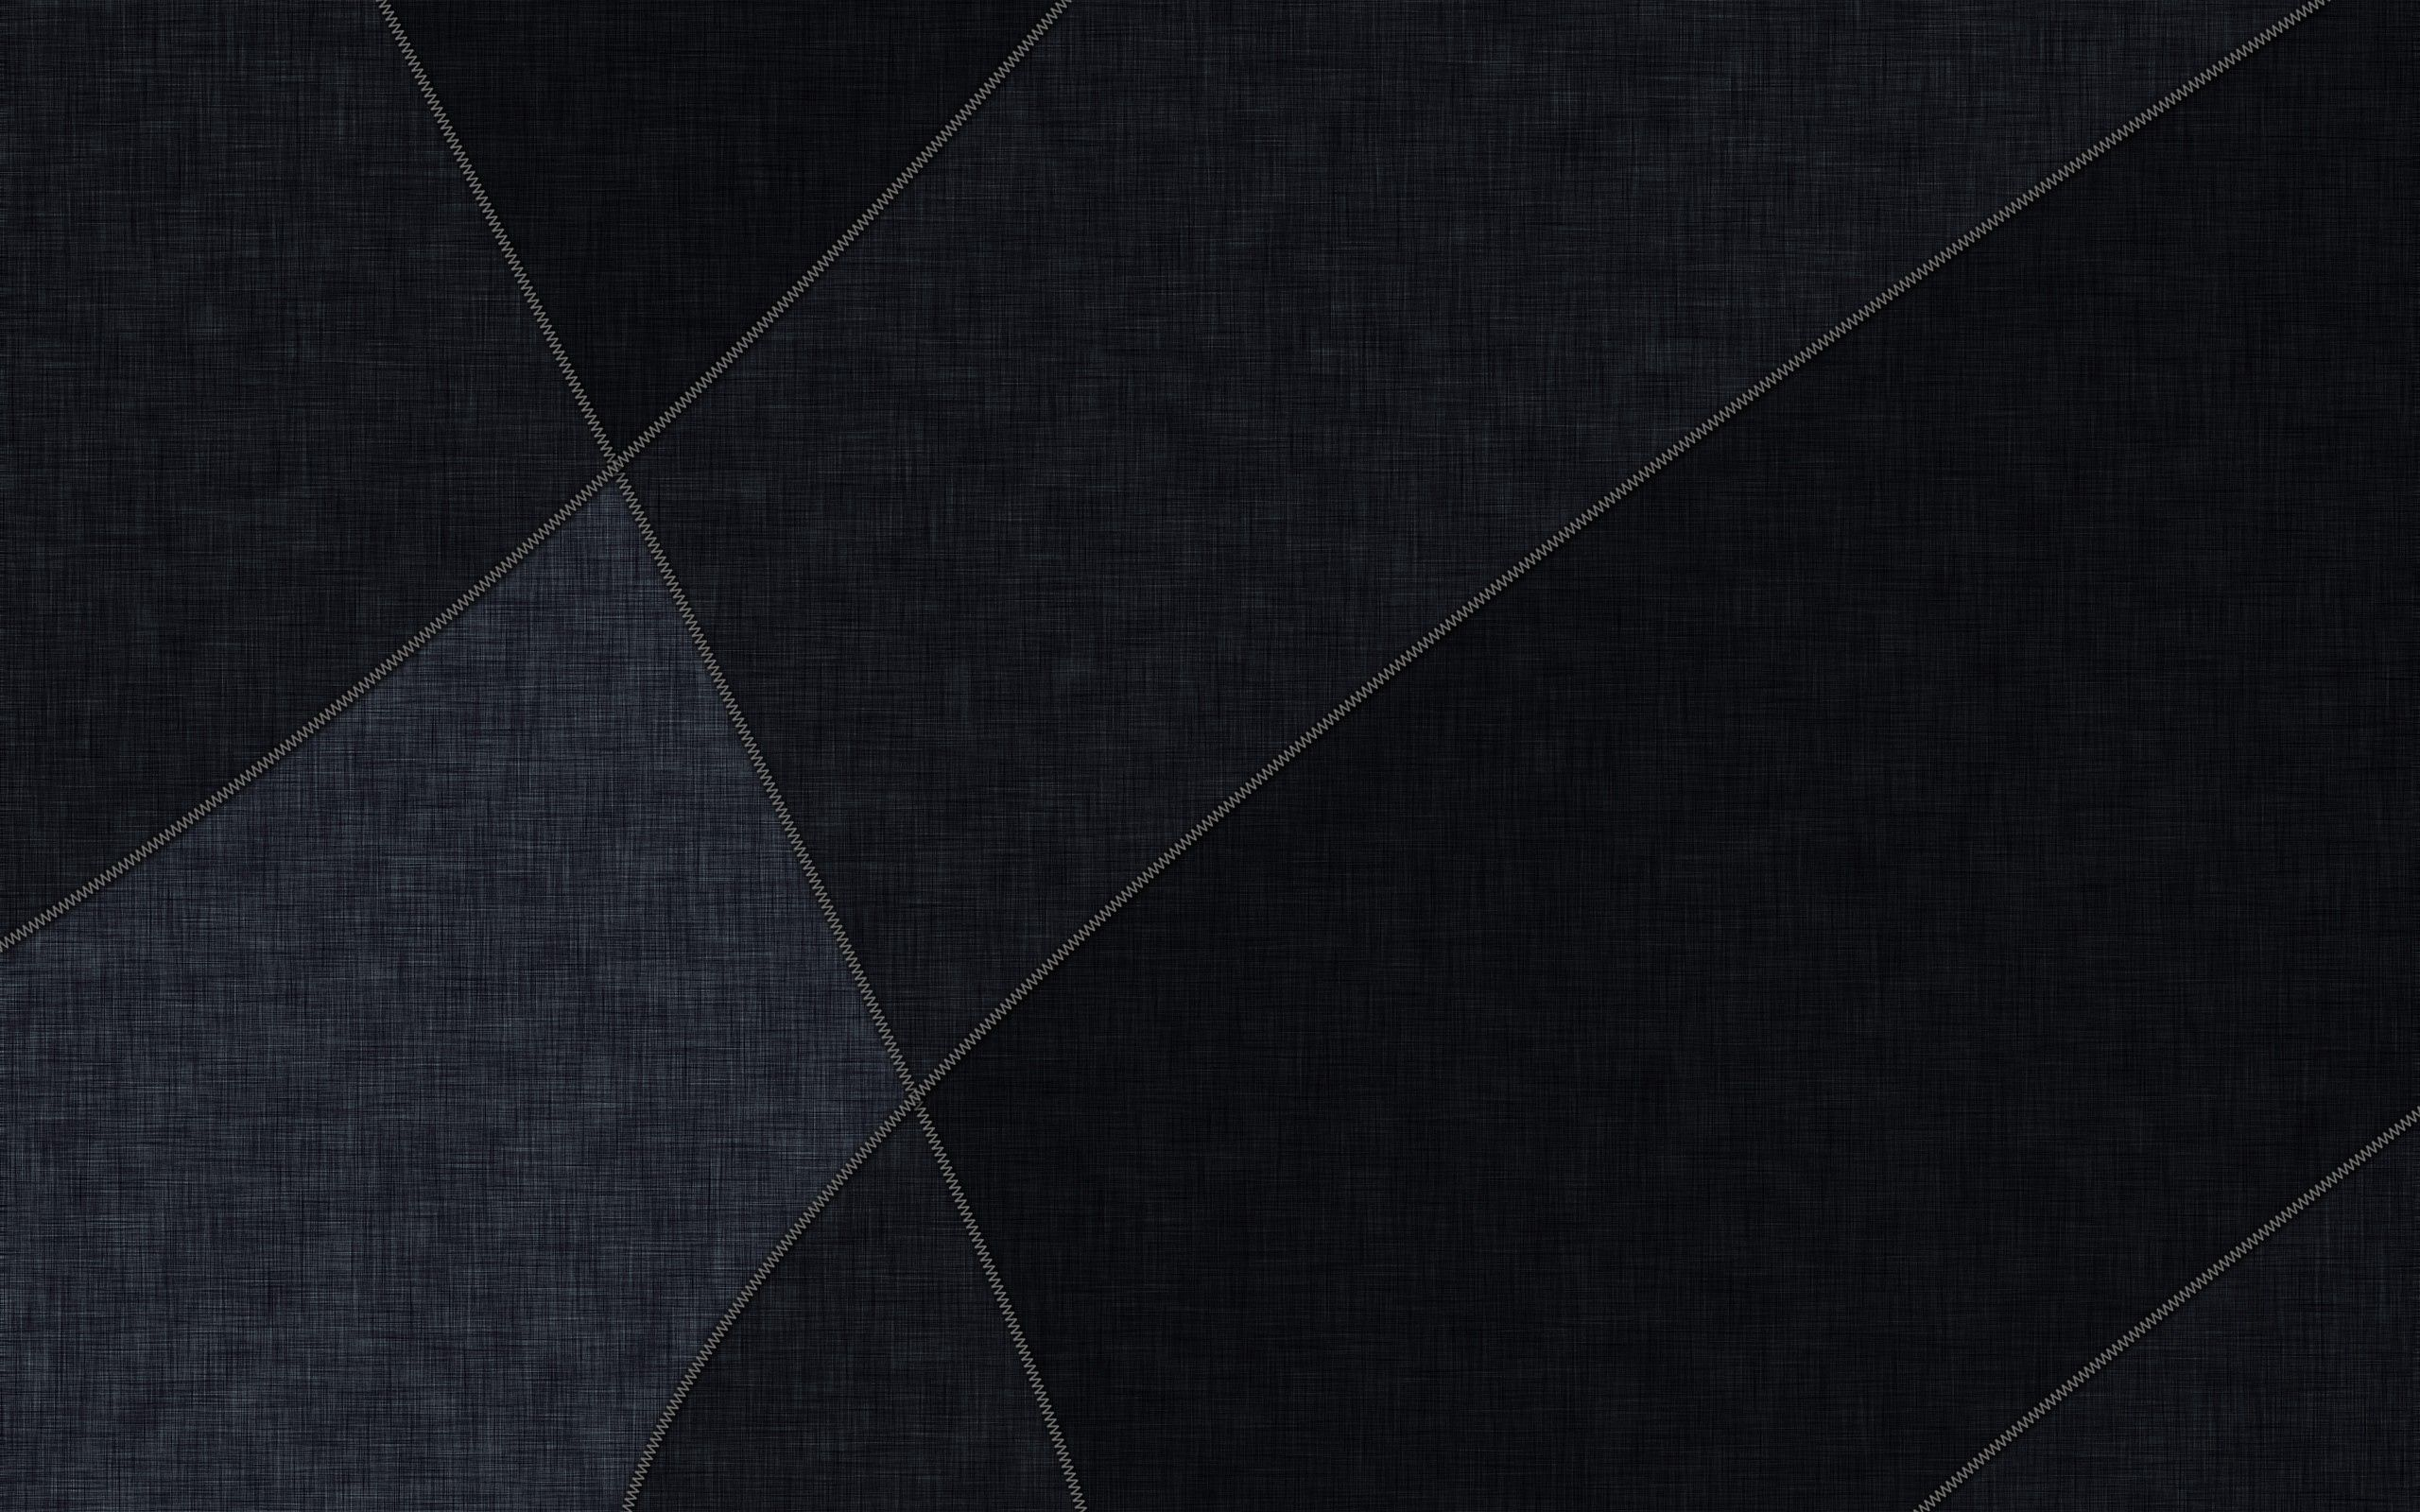 75946 download wallpaper Texture, Textures, Background, Dark, Lines, Surface screensavers and pictures for free